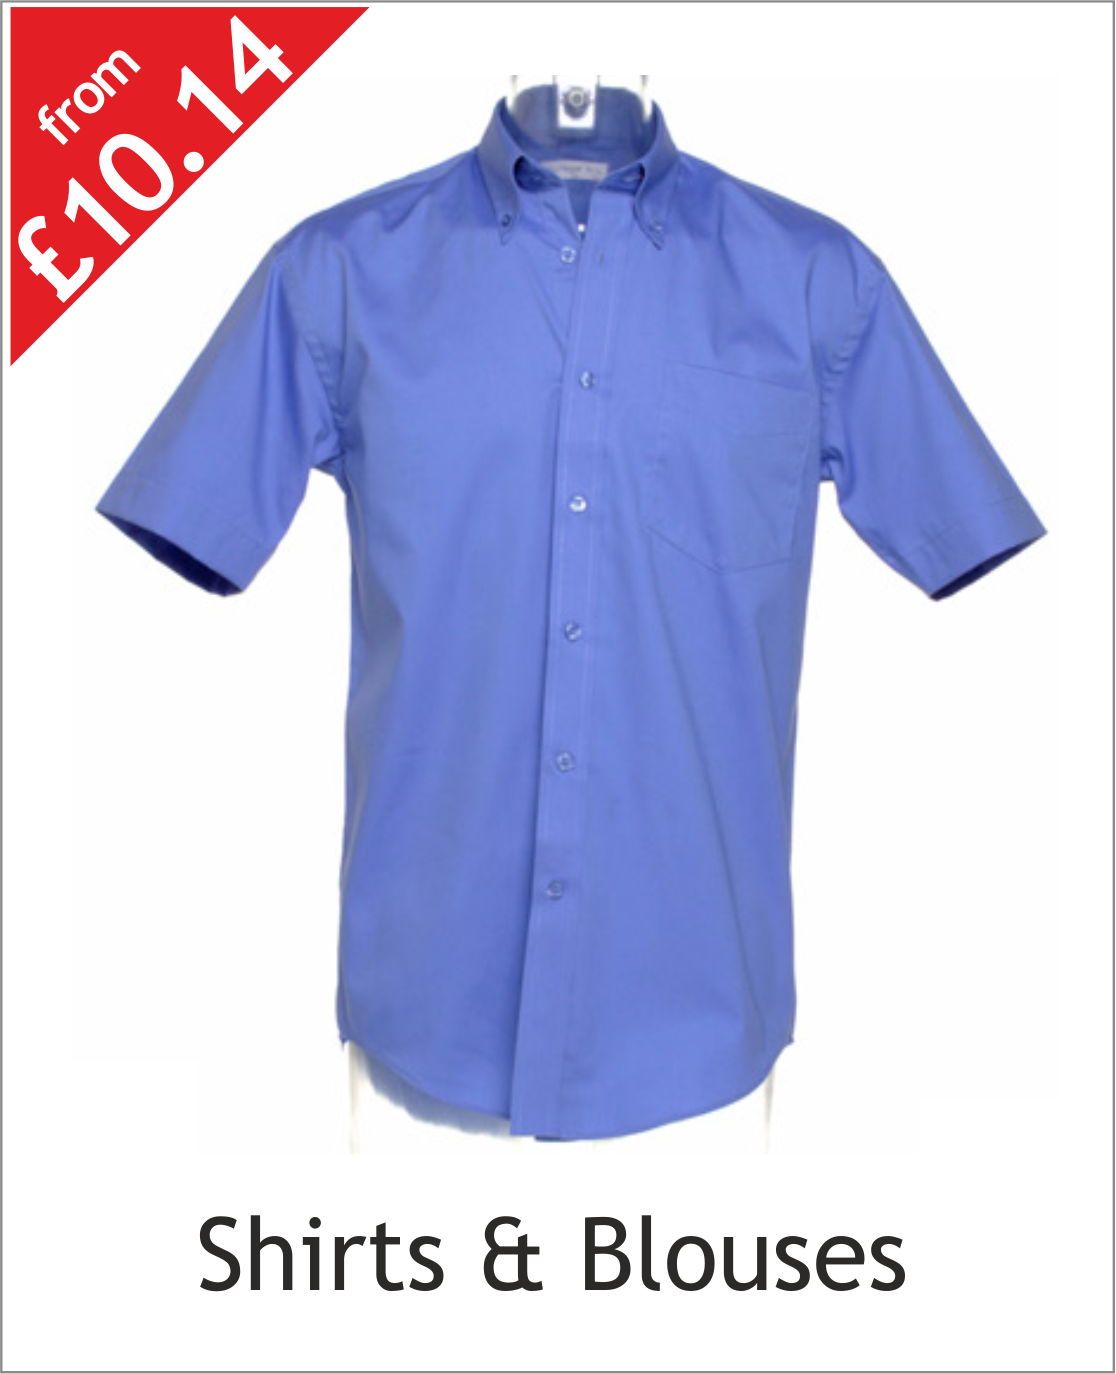 Embroidered & printed shirts & blouses catagory